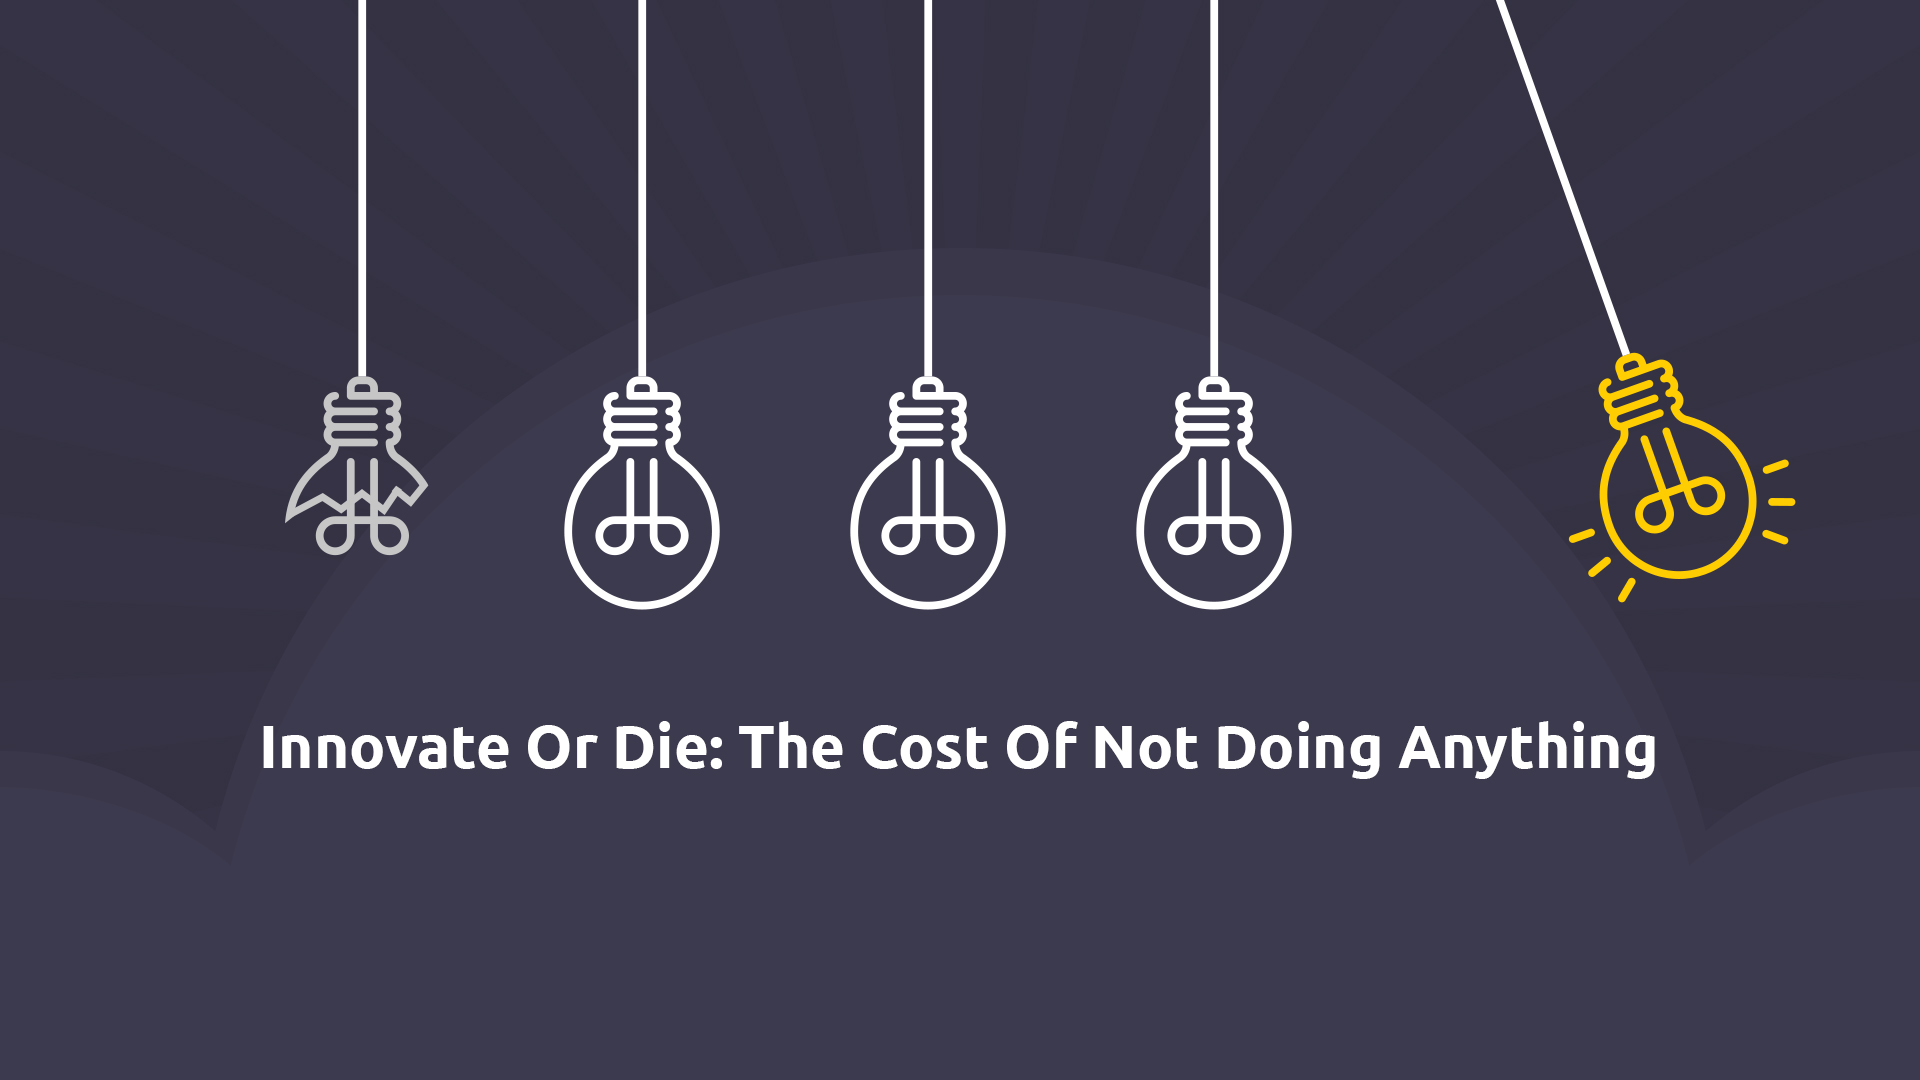 Innovate or die the cost of not doing anything how failure to innovate can really hurt businesses altavistaventures Gallery